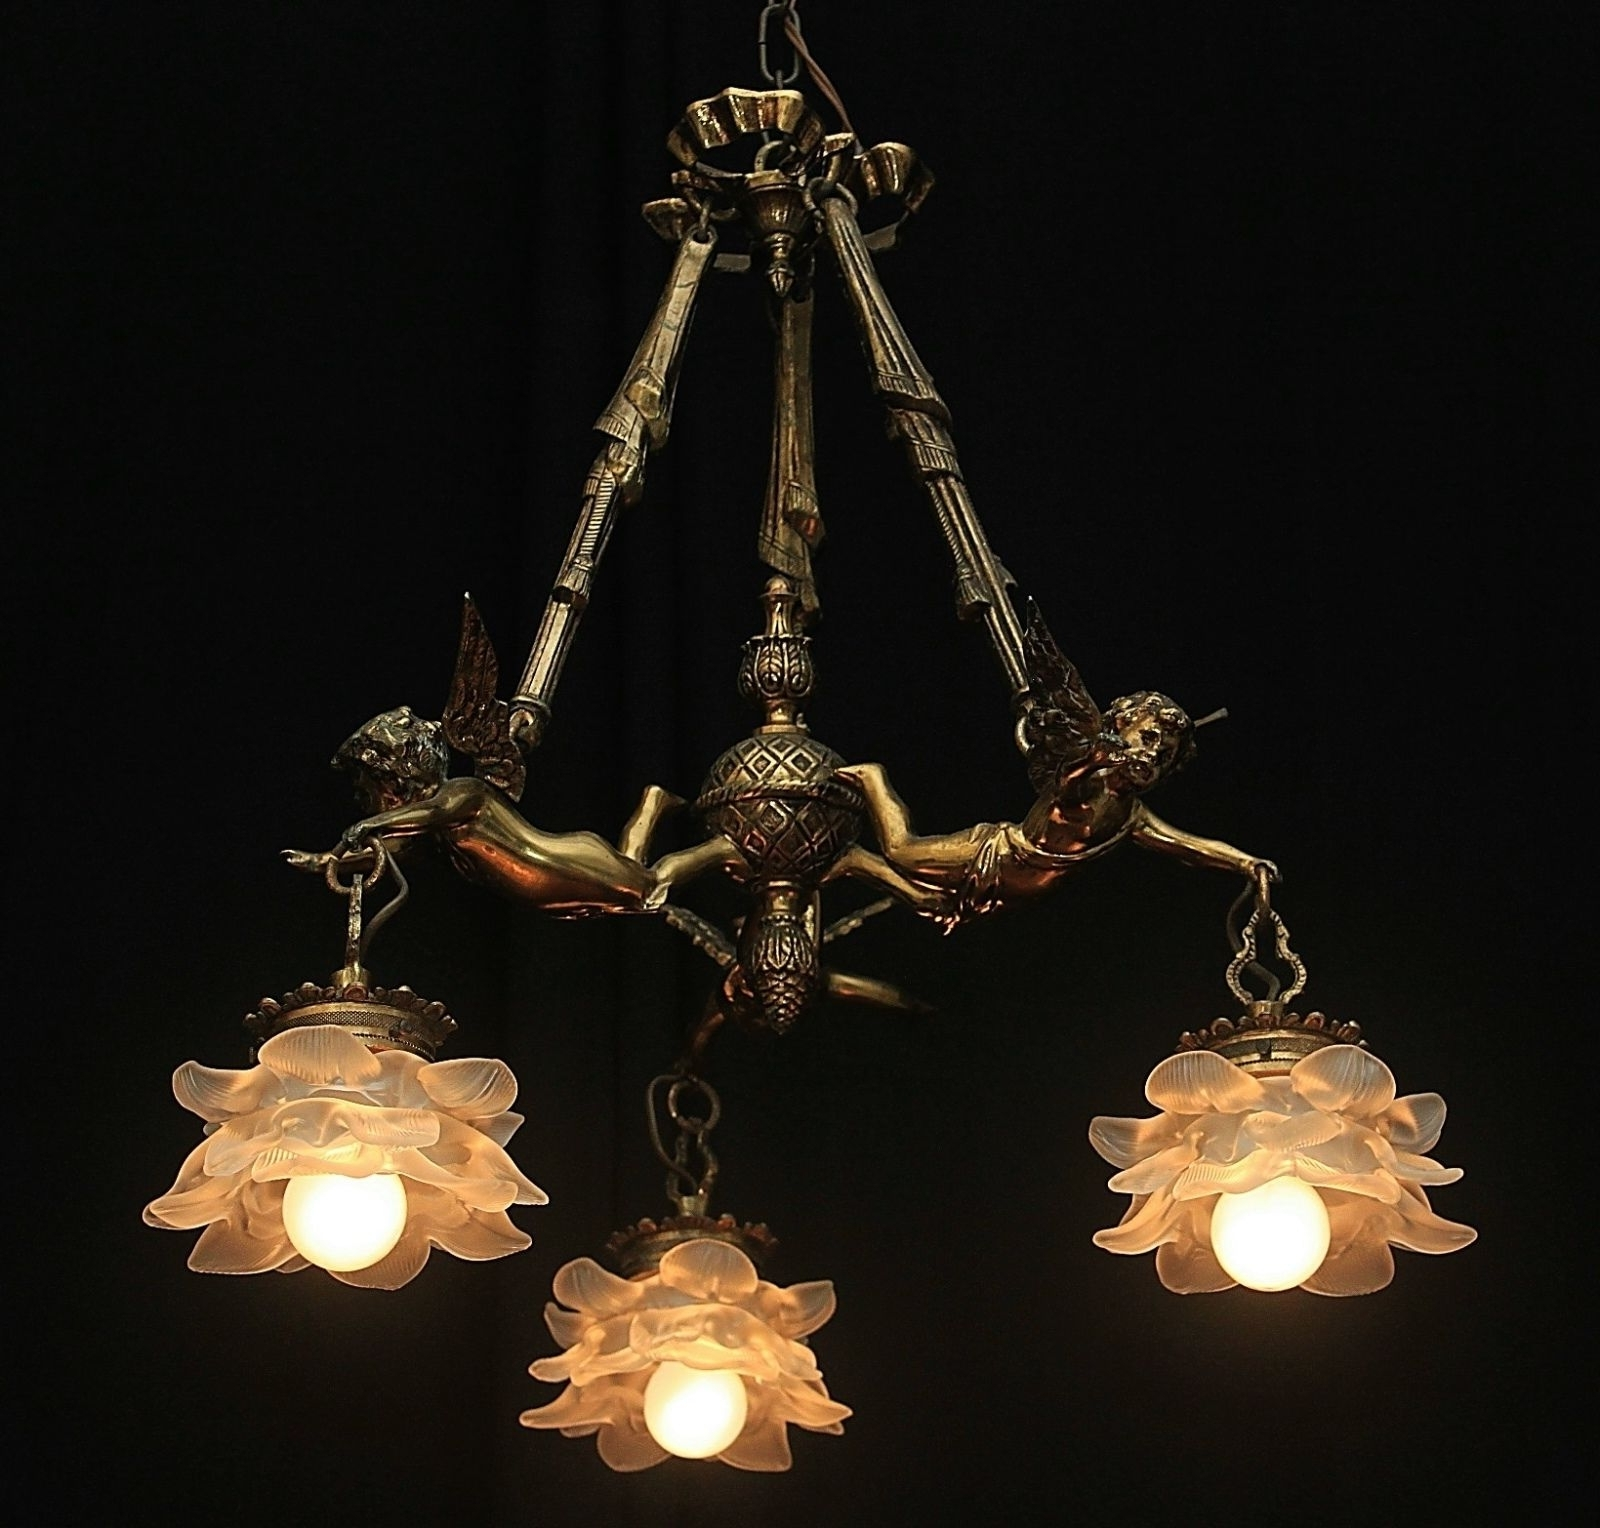 Vintage Bronze French Shabby Flying Chic Cherub Chandelier With With Regard To Popular Vintage French Chandeliers (Gallery 17 of 20)